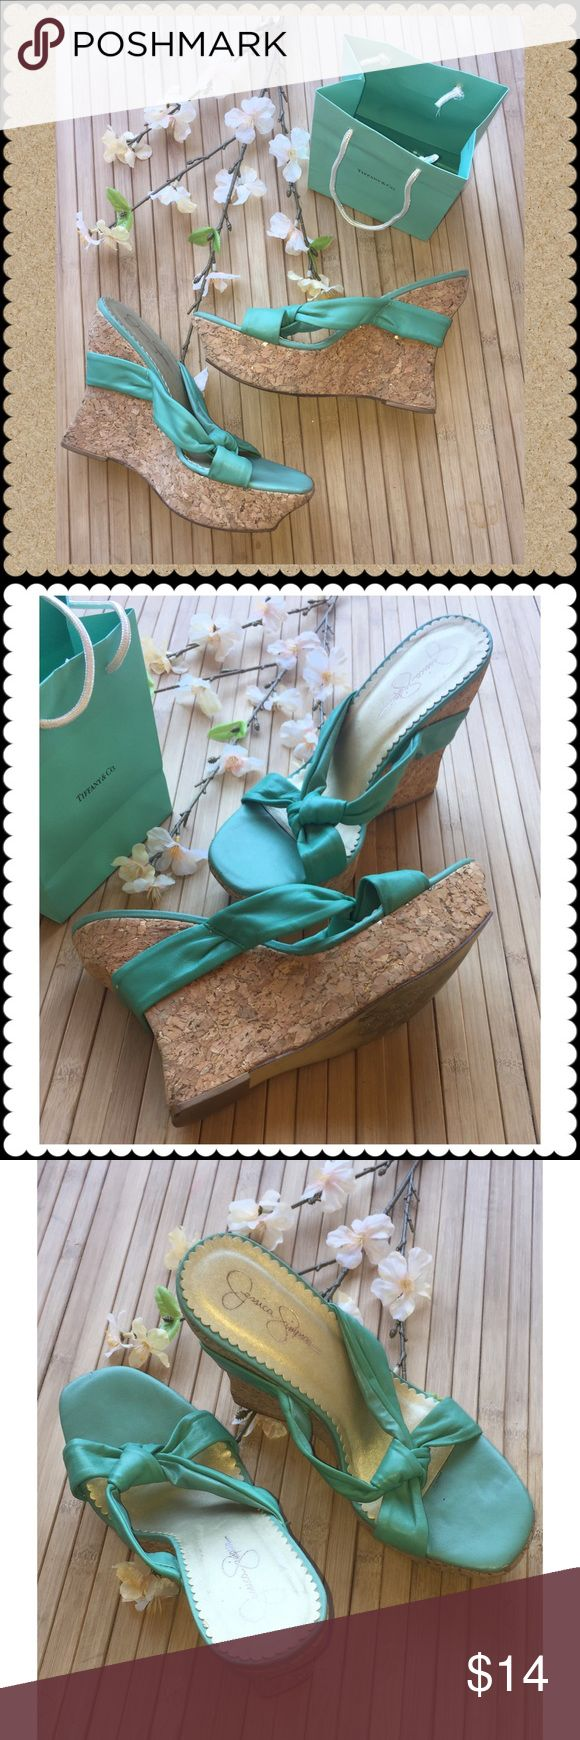 Jessica Simpson cork wedge platforms 8 Jessica Simpson  Wedge platform shoes sandals, cork is a mix of brown with bits of gold, very pretty! Sz 8  Teal top cork wedge Gently used condition  No trades. Jessica Simpson Shoes Platforms